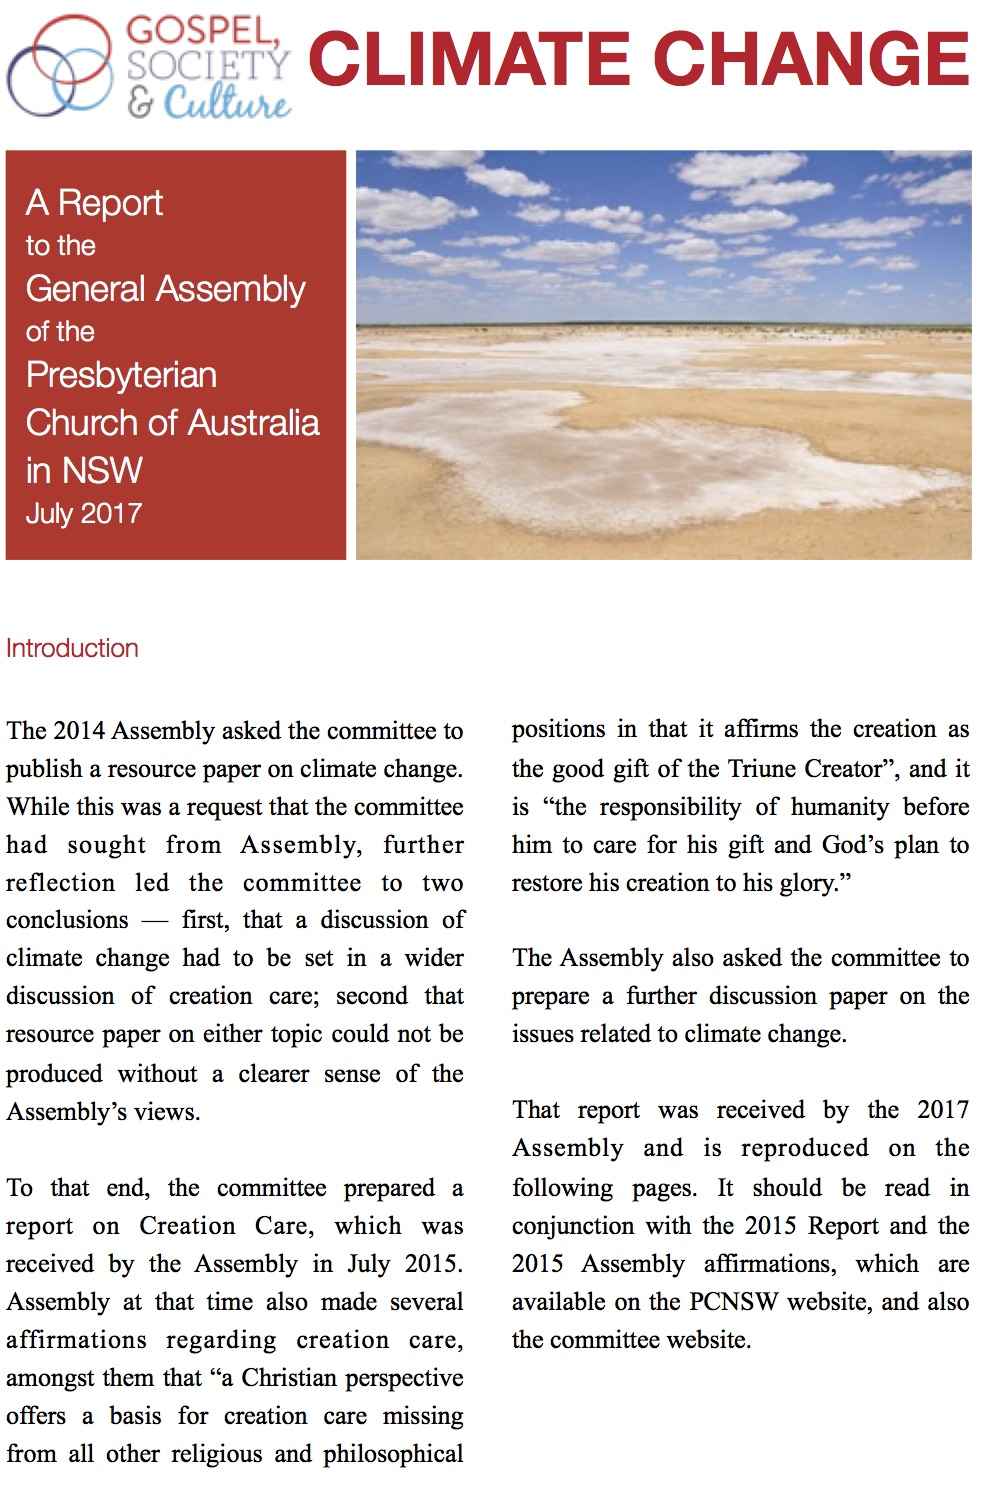 http://gsandc.org.au/wp-content/uploads/2015/12/GSC-Climate-Change-report.jpg